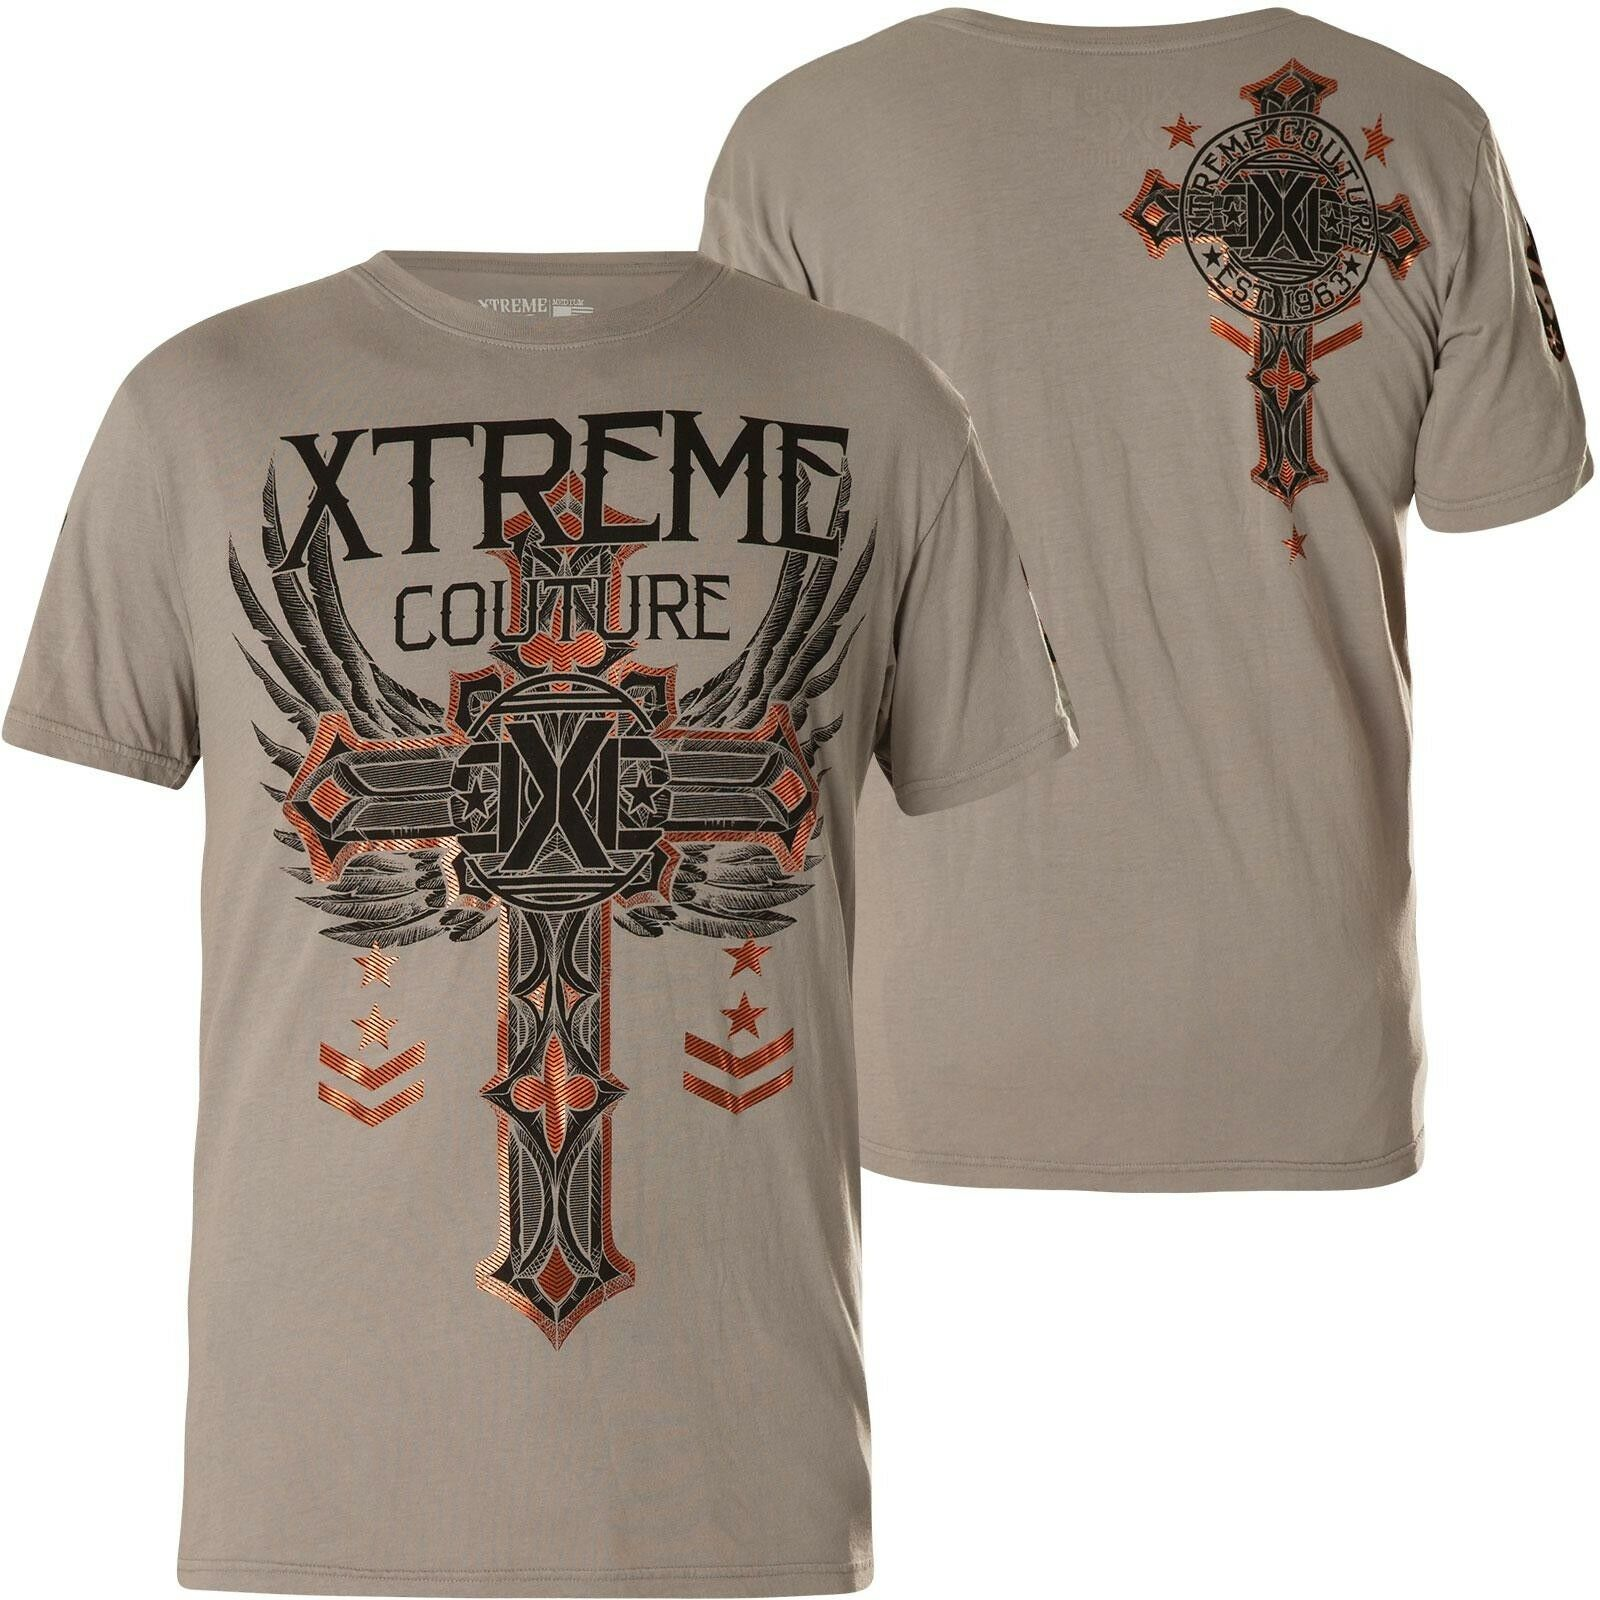 Xtreme Couture by Affliction T-Shirt Faith & Trust Grey